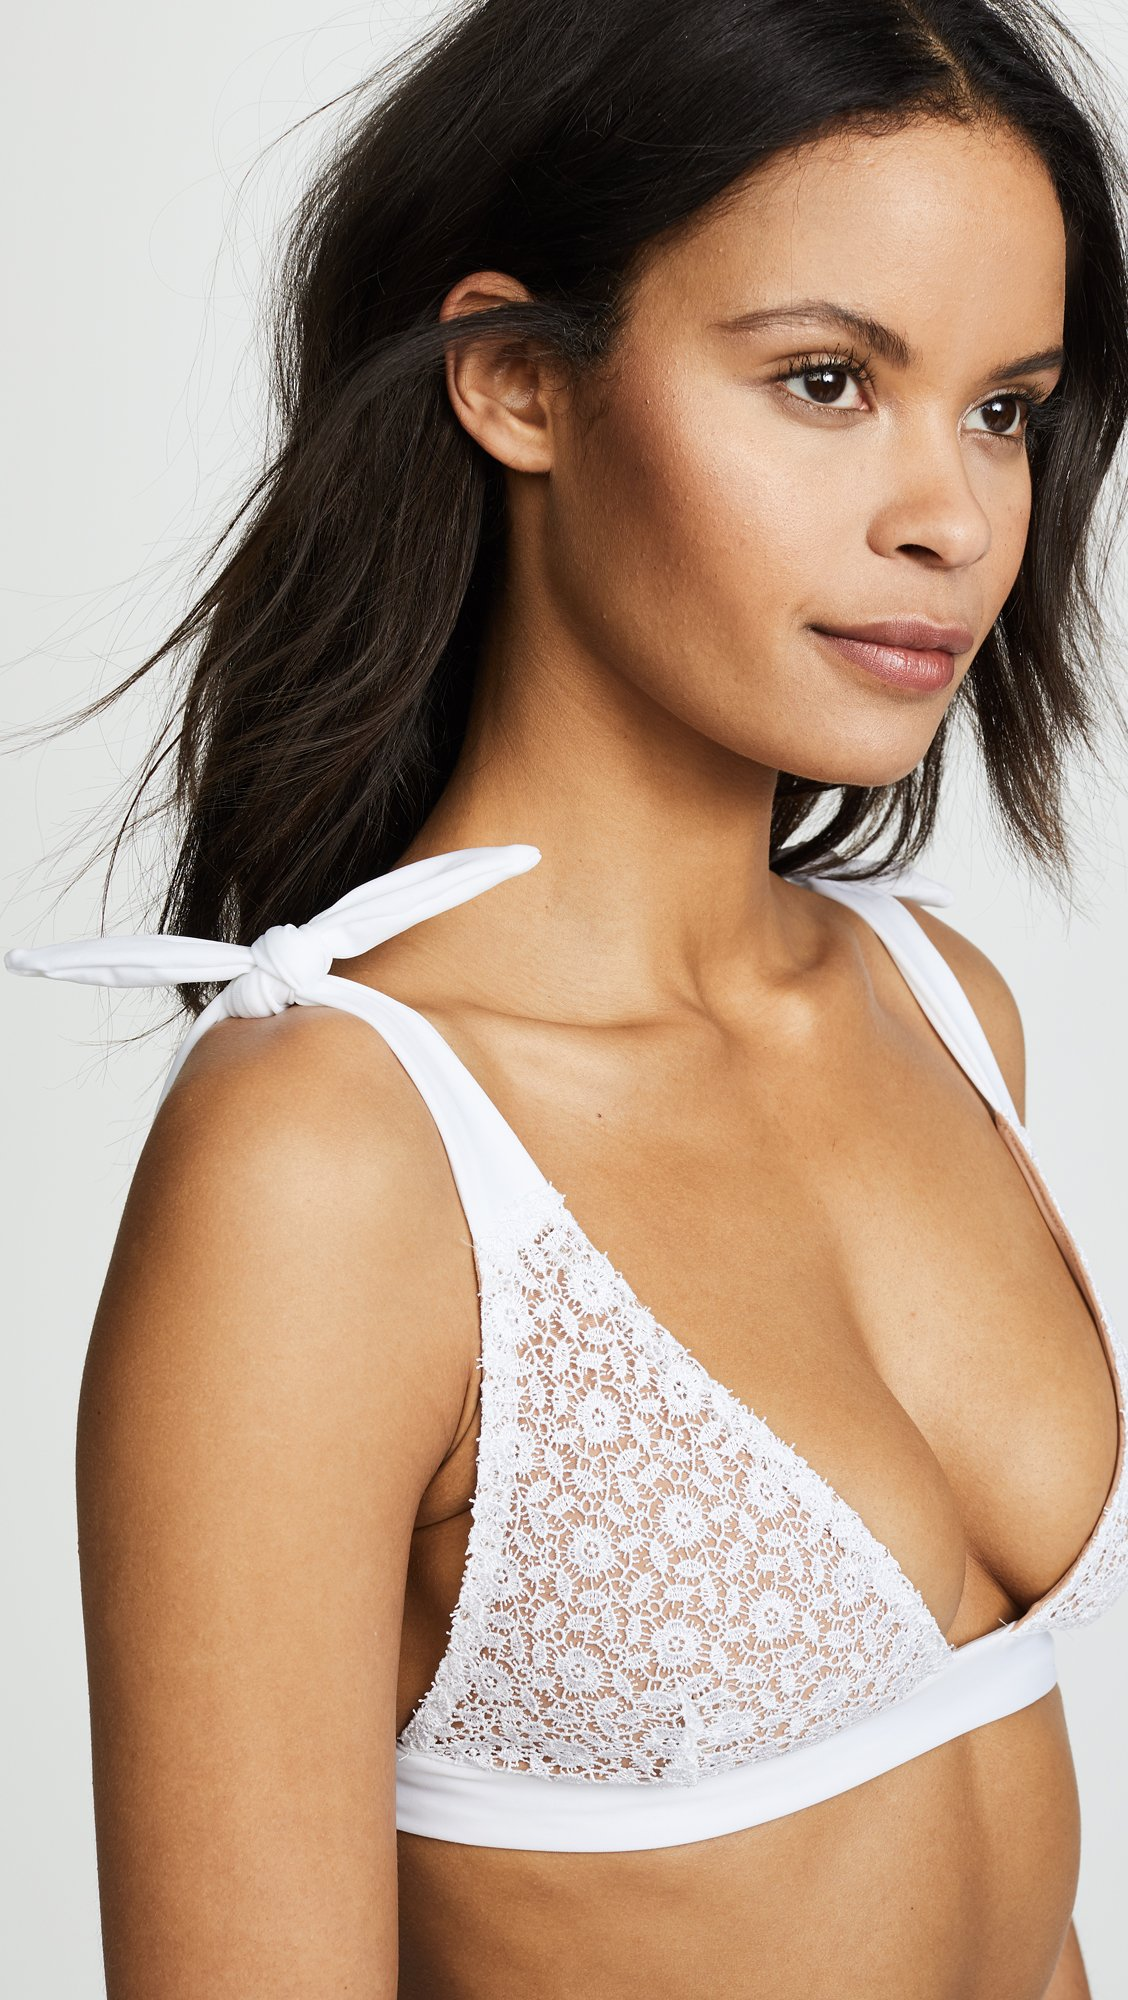 For Love & Lemons Women's Daquiri Lace Bikini Top, White Lace, X-Small by For Love & Lemons (Image #5)